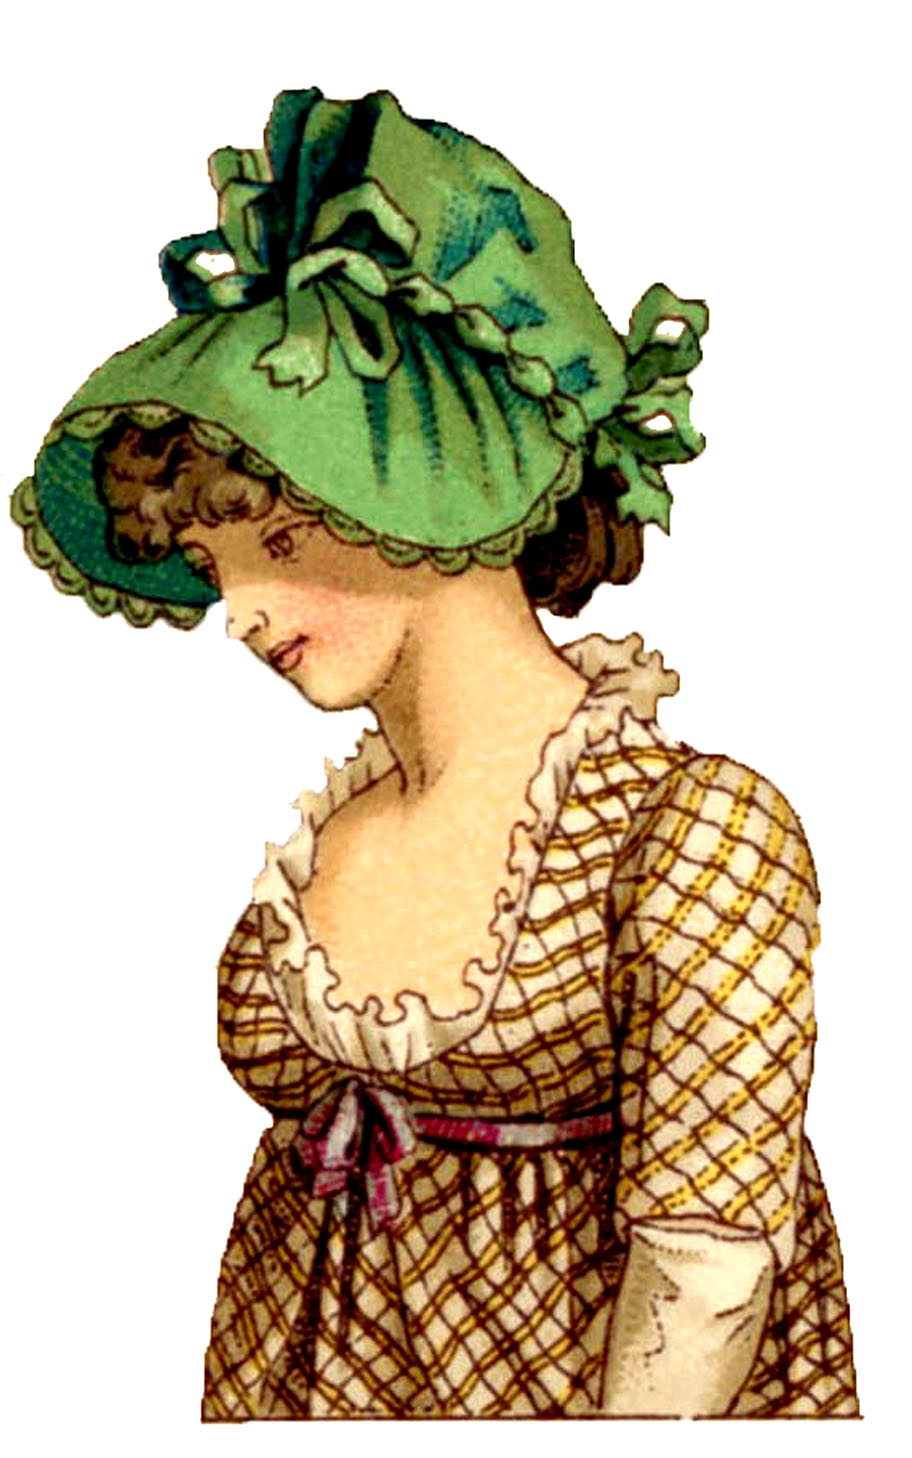 ... - Vintage Graphics - More French Costume Ladies - The Graphics Fairy: pinterest.com/pin/516084438521468369